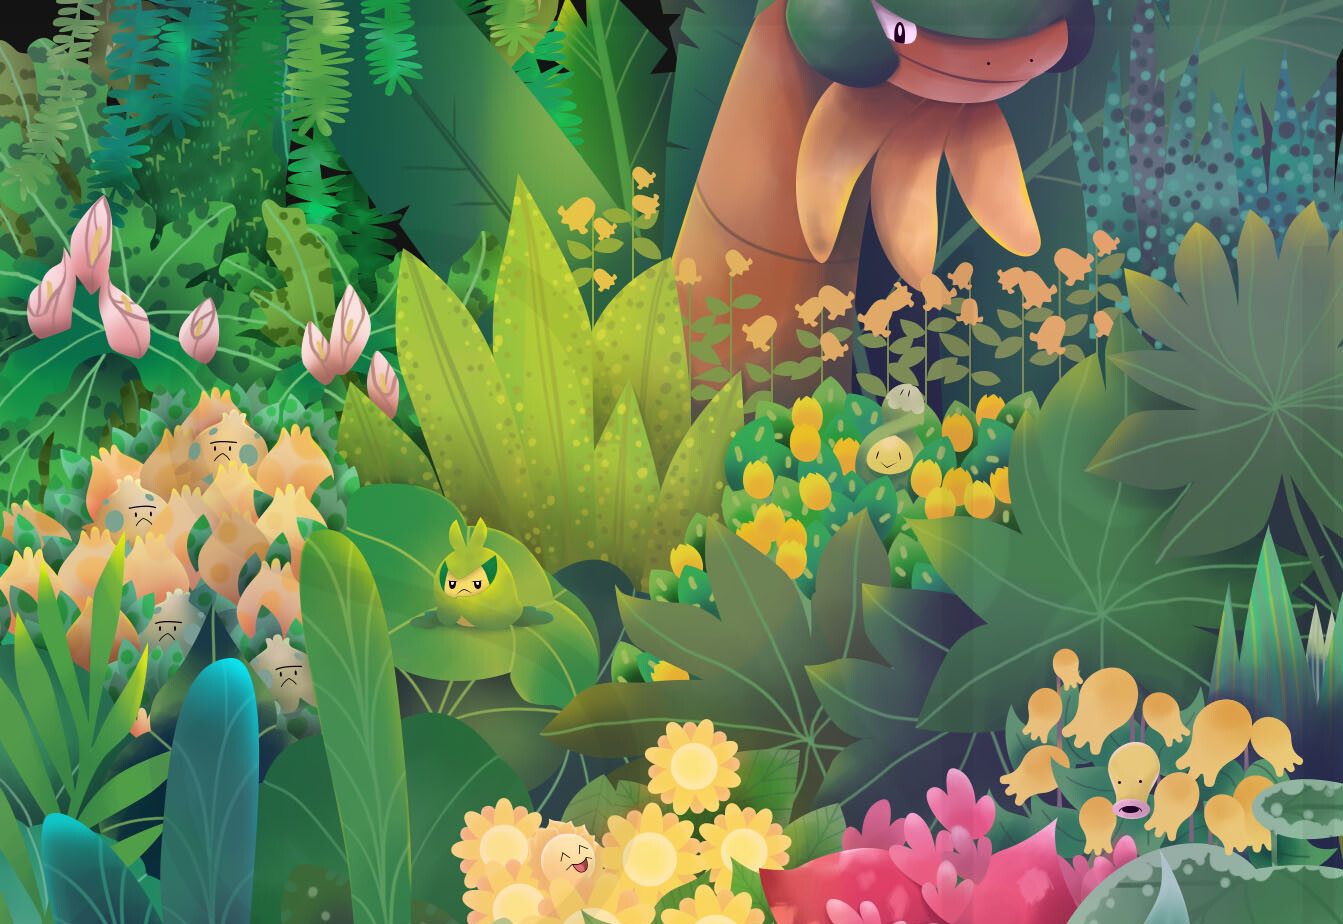 269152000 ArtStation - In the Leaves-PokemonxUniqlo UTGP 2019 entry, Stephanie ...